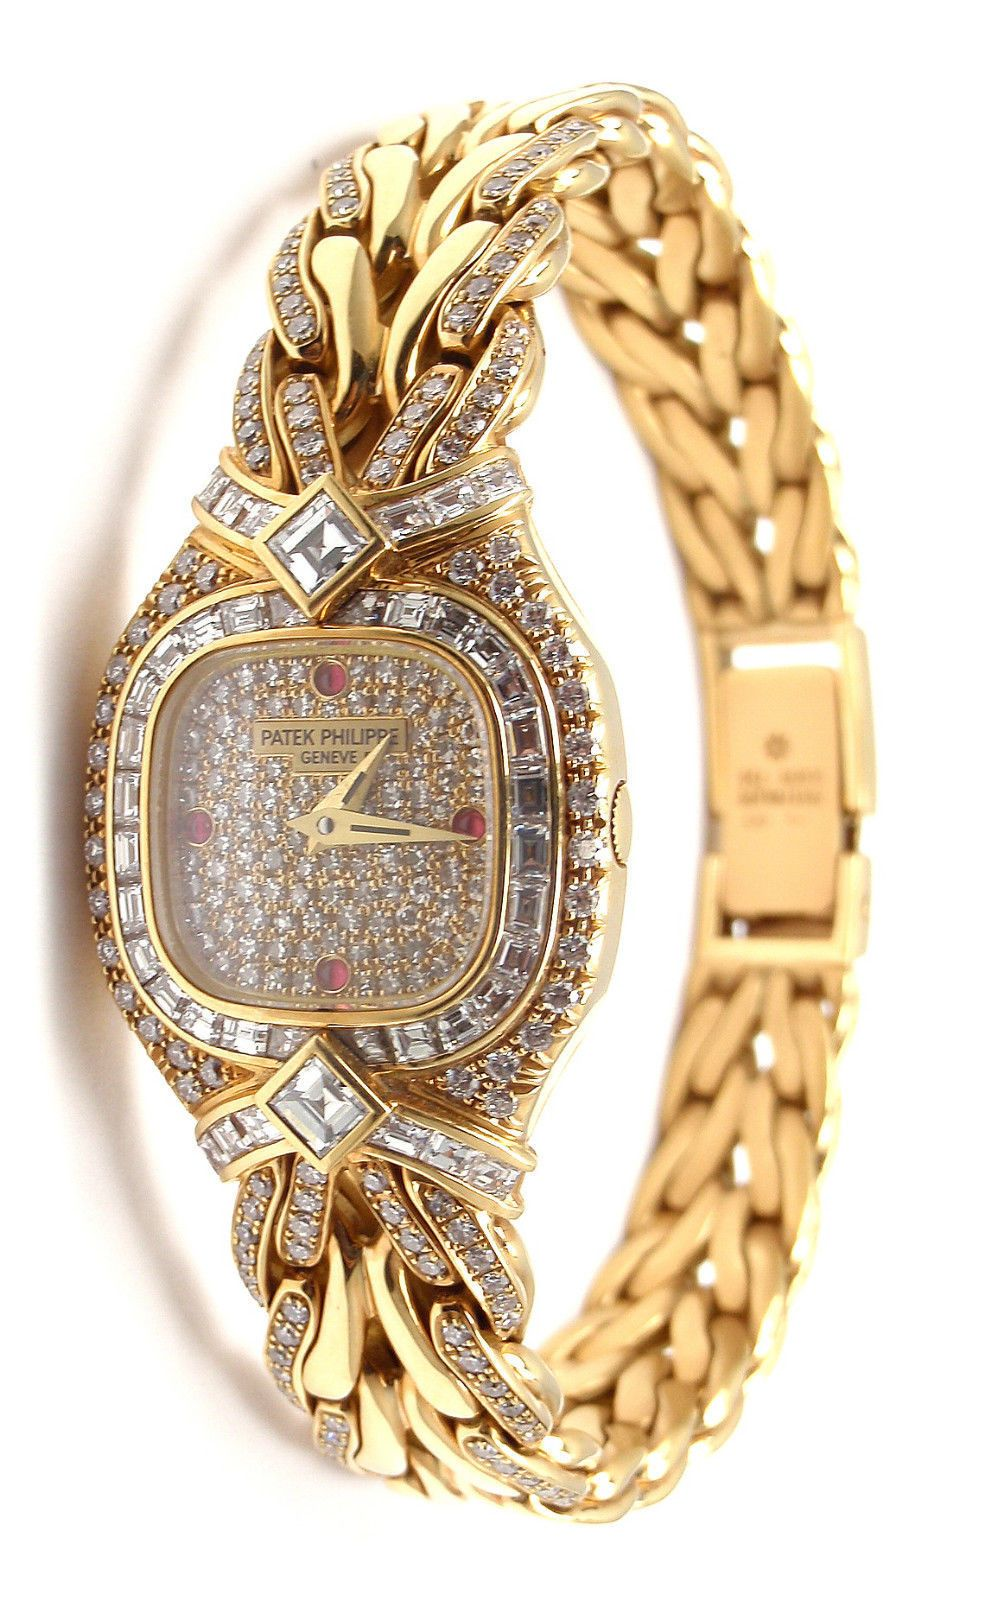 Patek Philippe Lady s Yellow Gold Diamond Ruby La Flamme Bracelet ... 45ddef2fb41